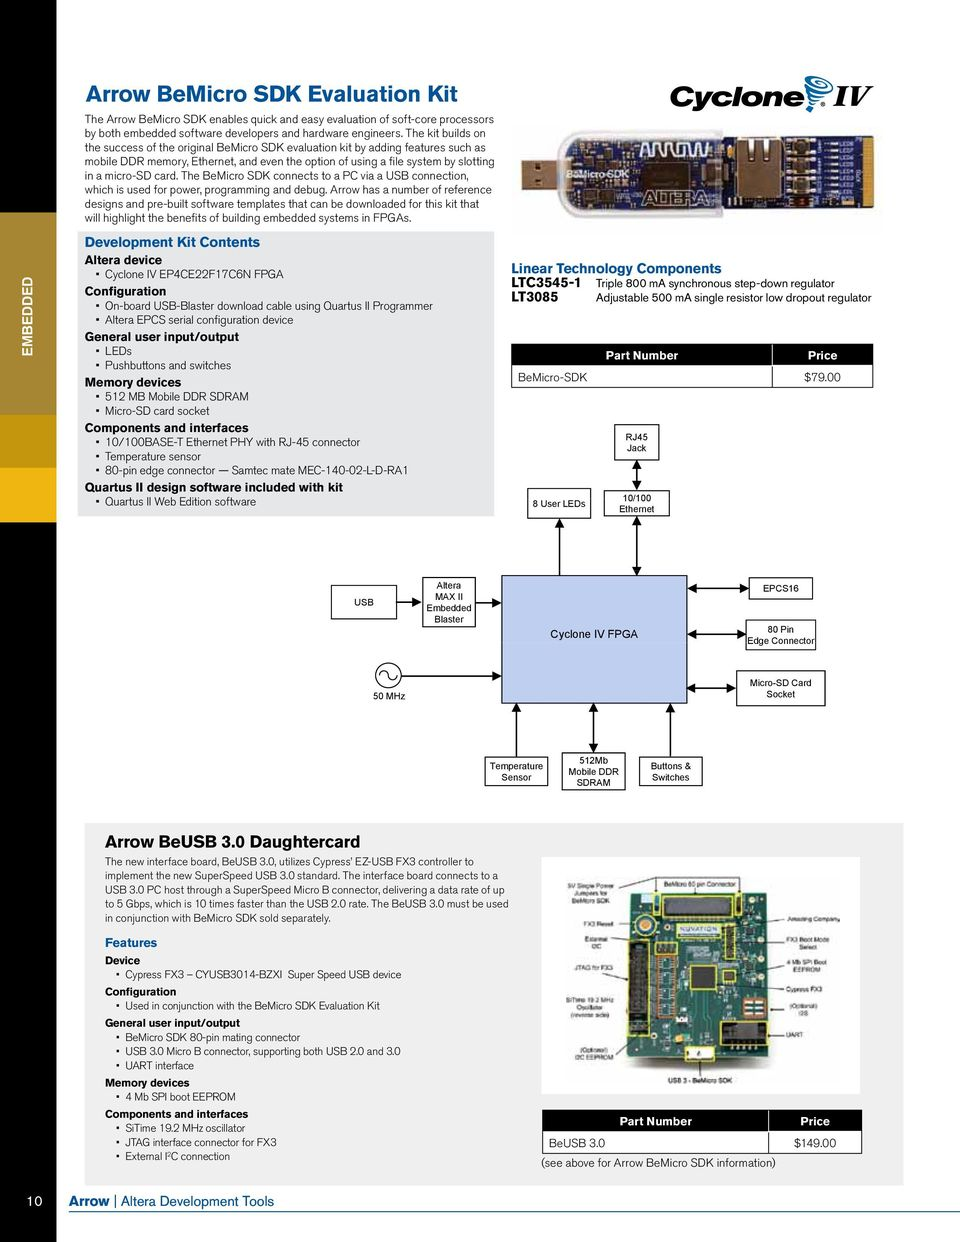 Altera Development Tools Pdf Linear Ltc4151 Voltage And Current Monitoring Device Datasheet Card The Bemicro Sdk Connects To A Pc Via Usb Connection Which Is